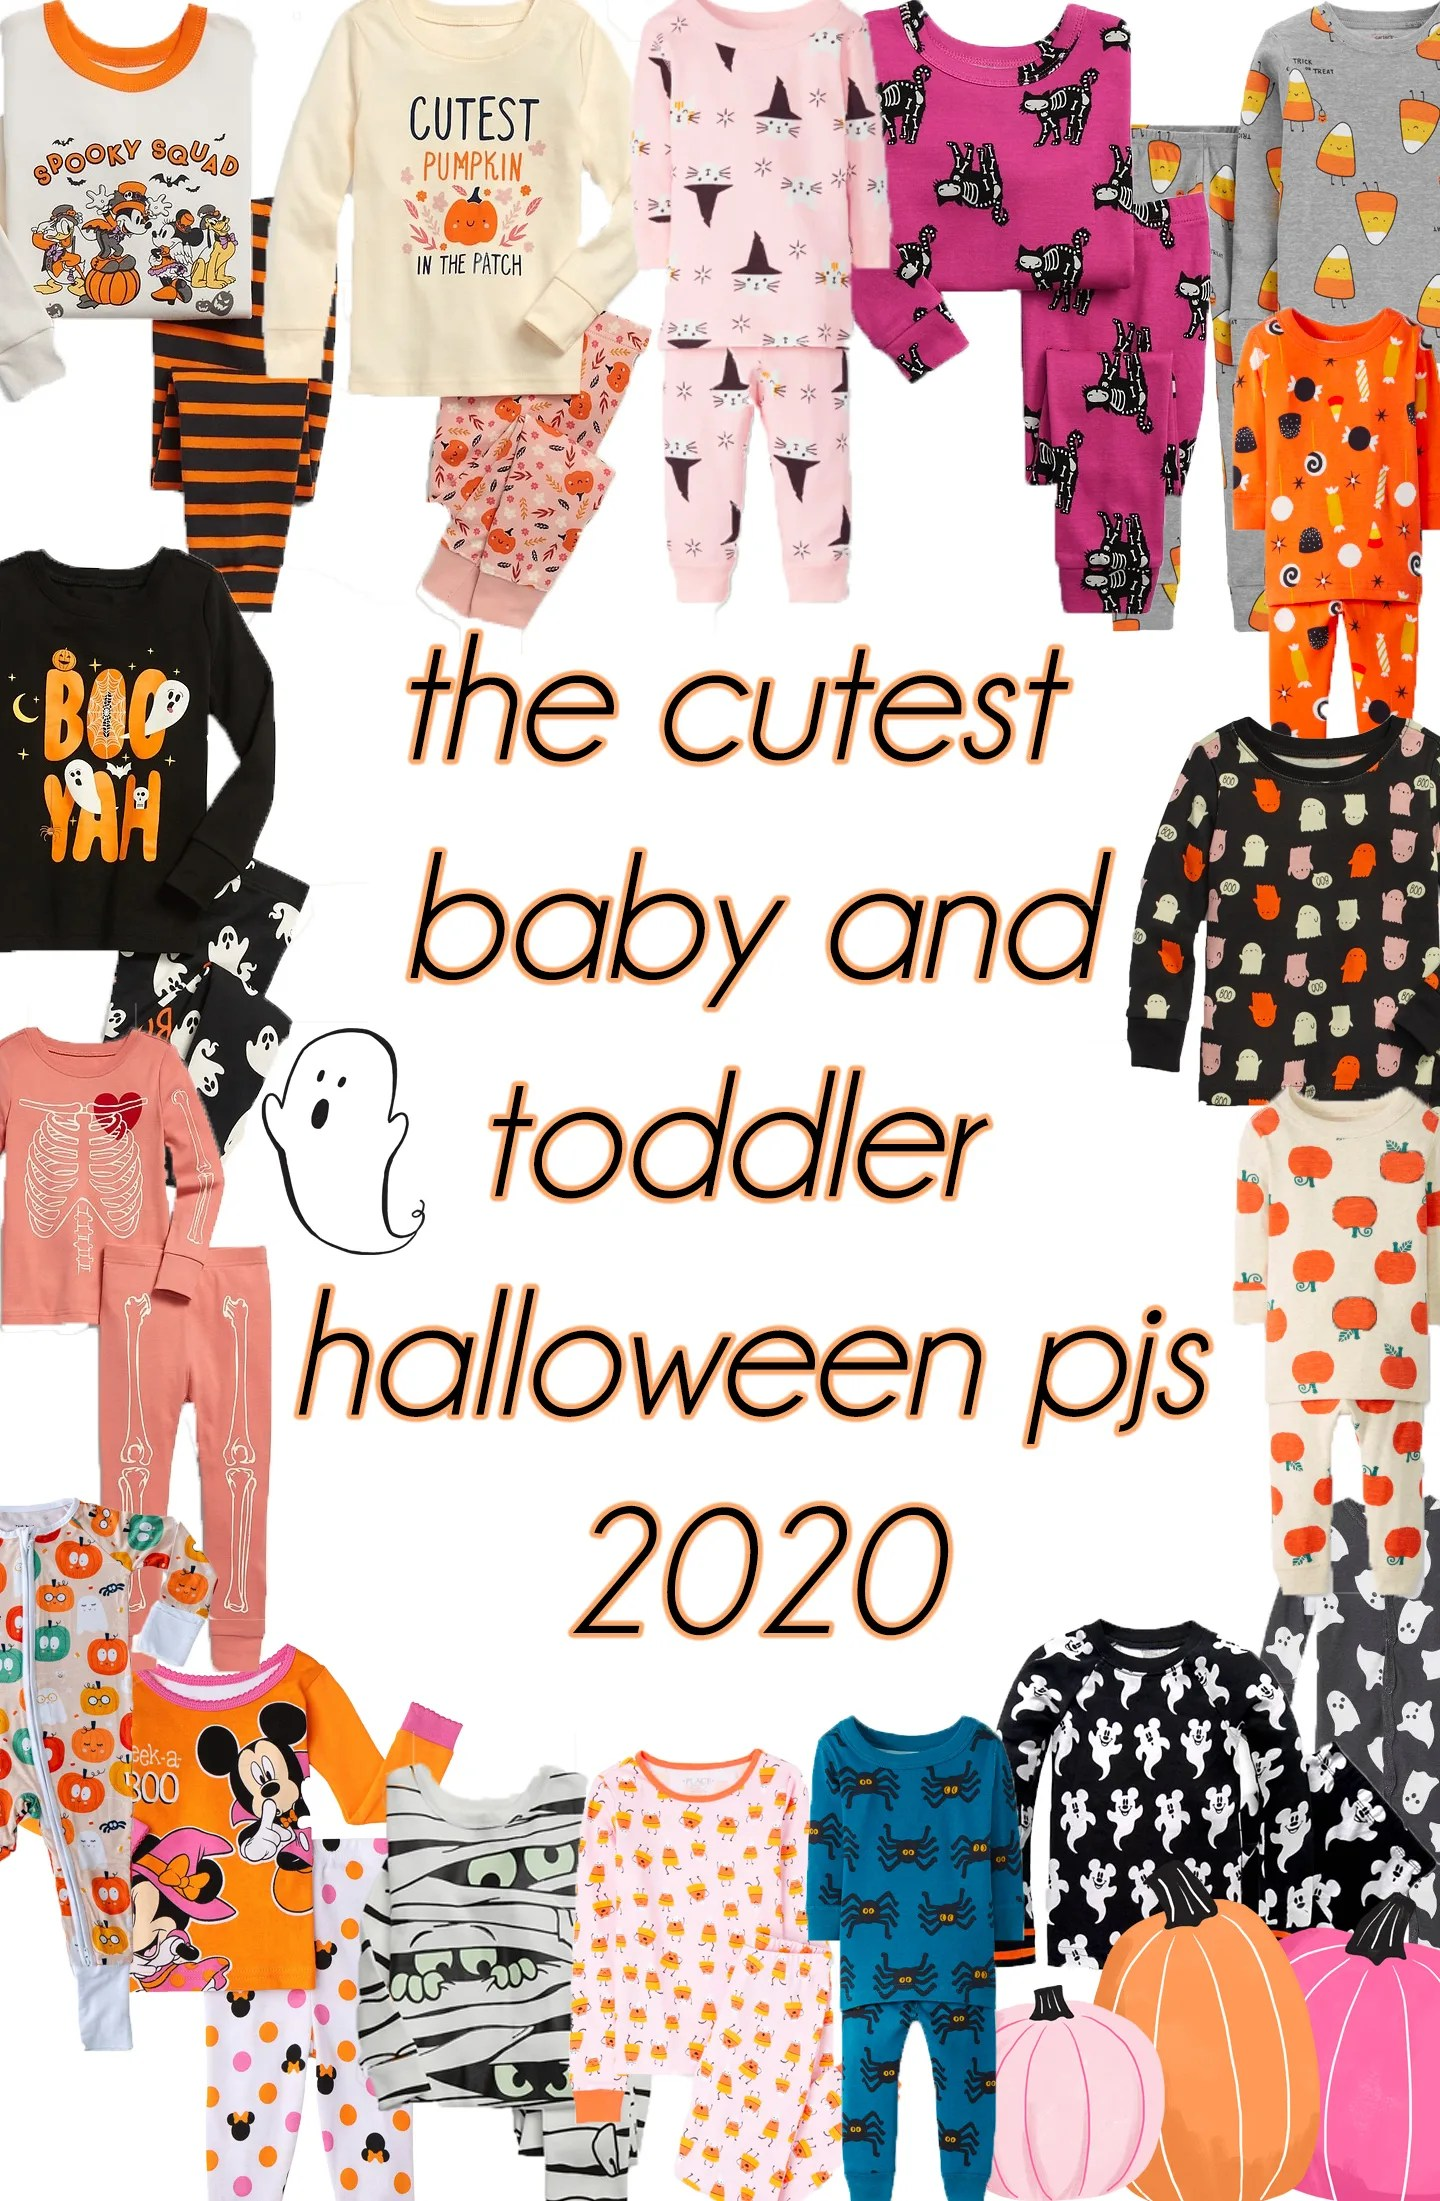 baby and toddler halloween pajamas 2020